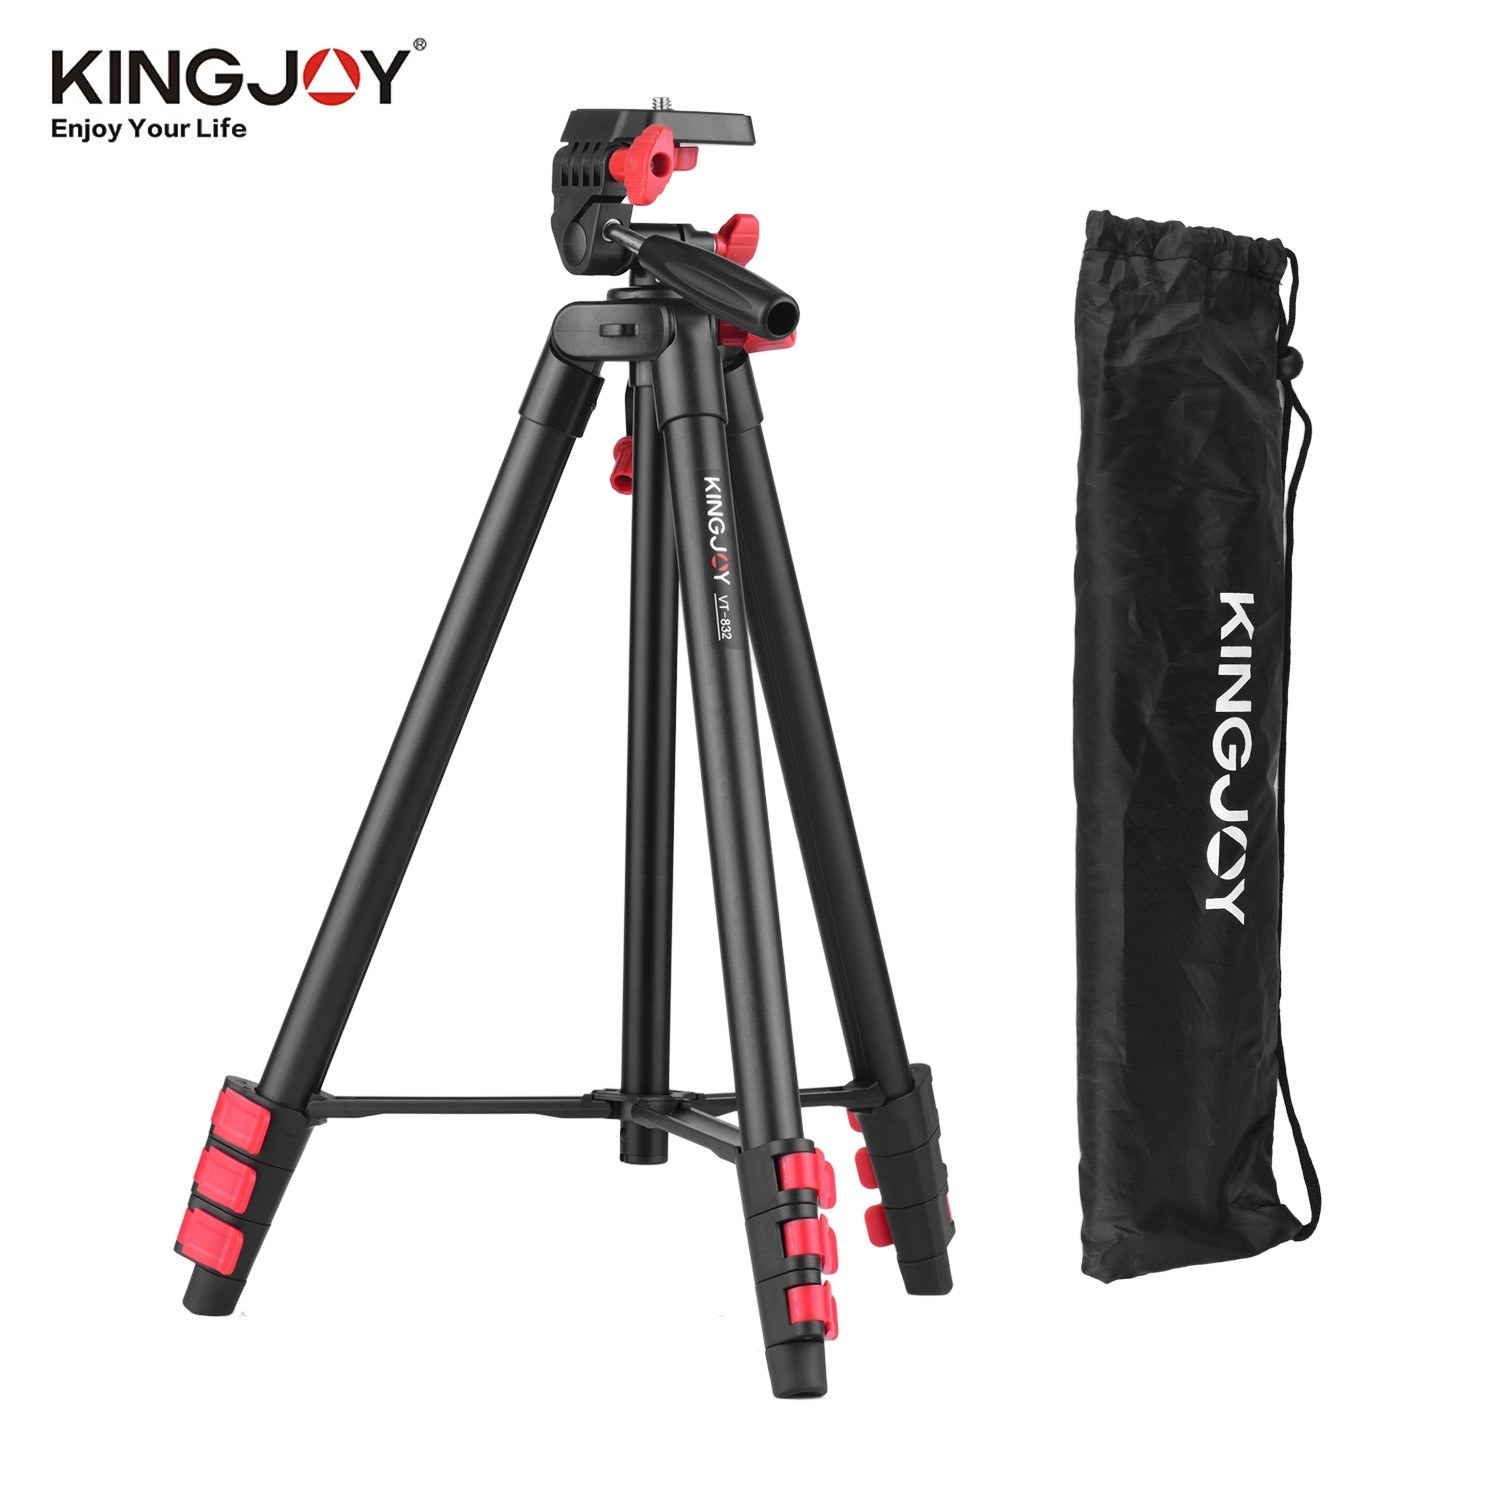 KINGJOY VT-832 Portable Photography Tripod Stand Aluminum Alloy 2kg Load Capacity 1/4 Inch Screw Connector Max. Height 131cm Middle Axis with Carry Bag Black